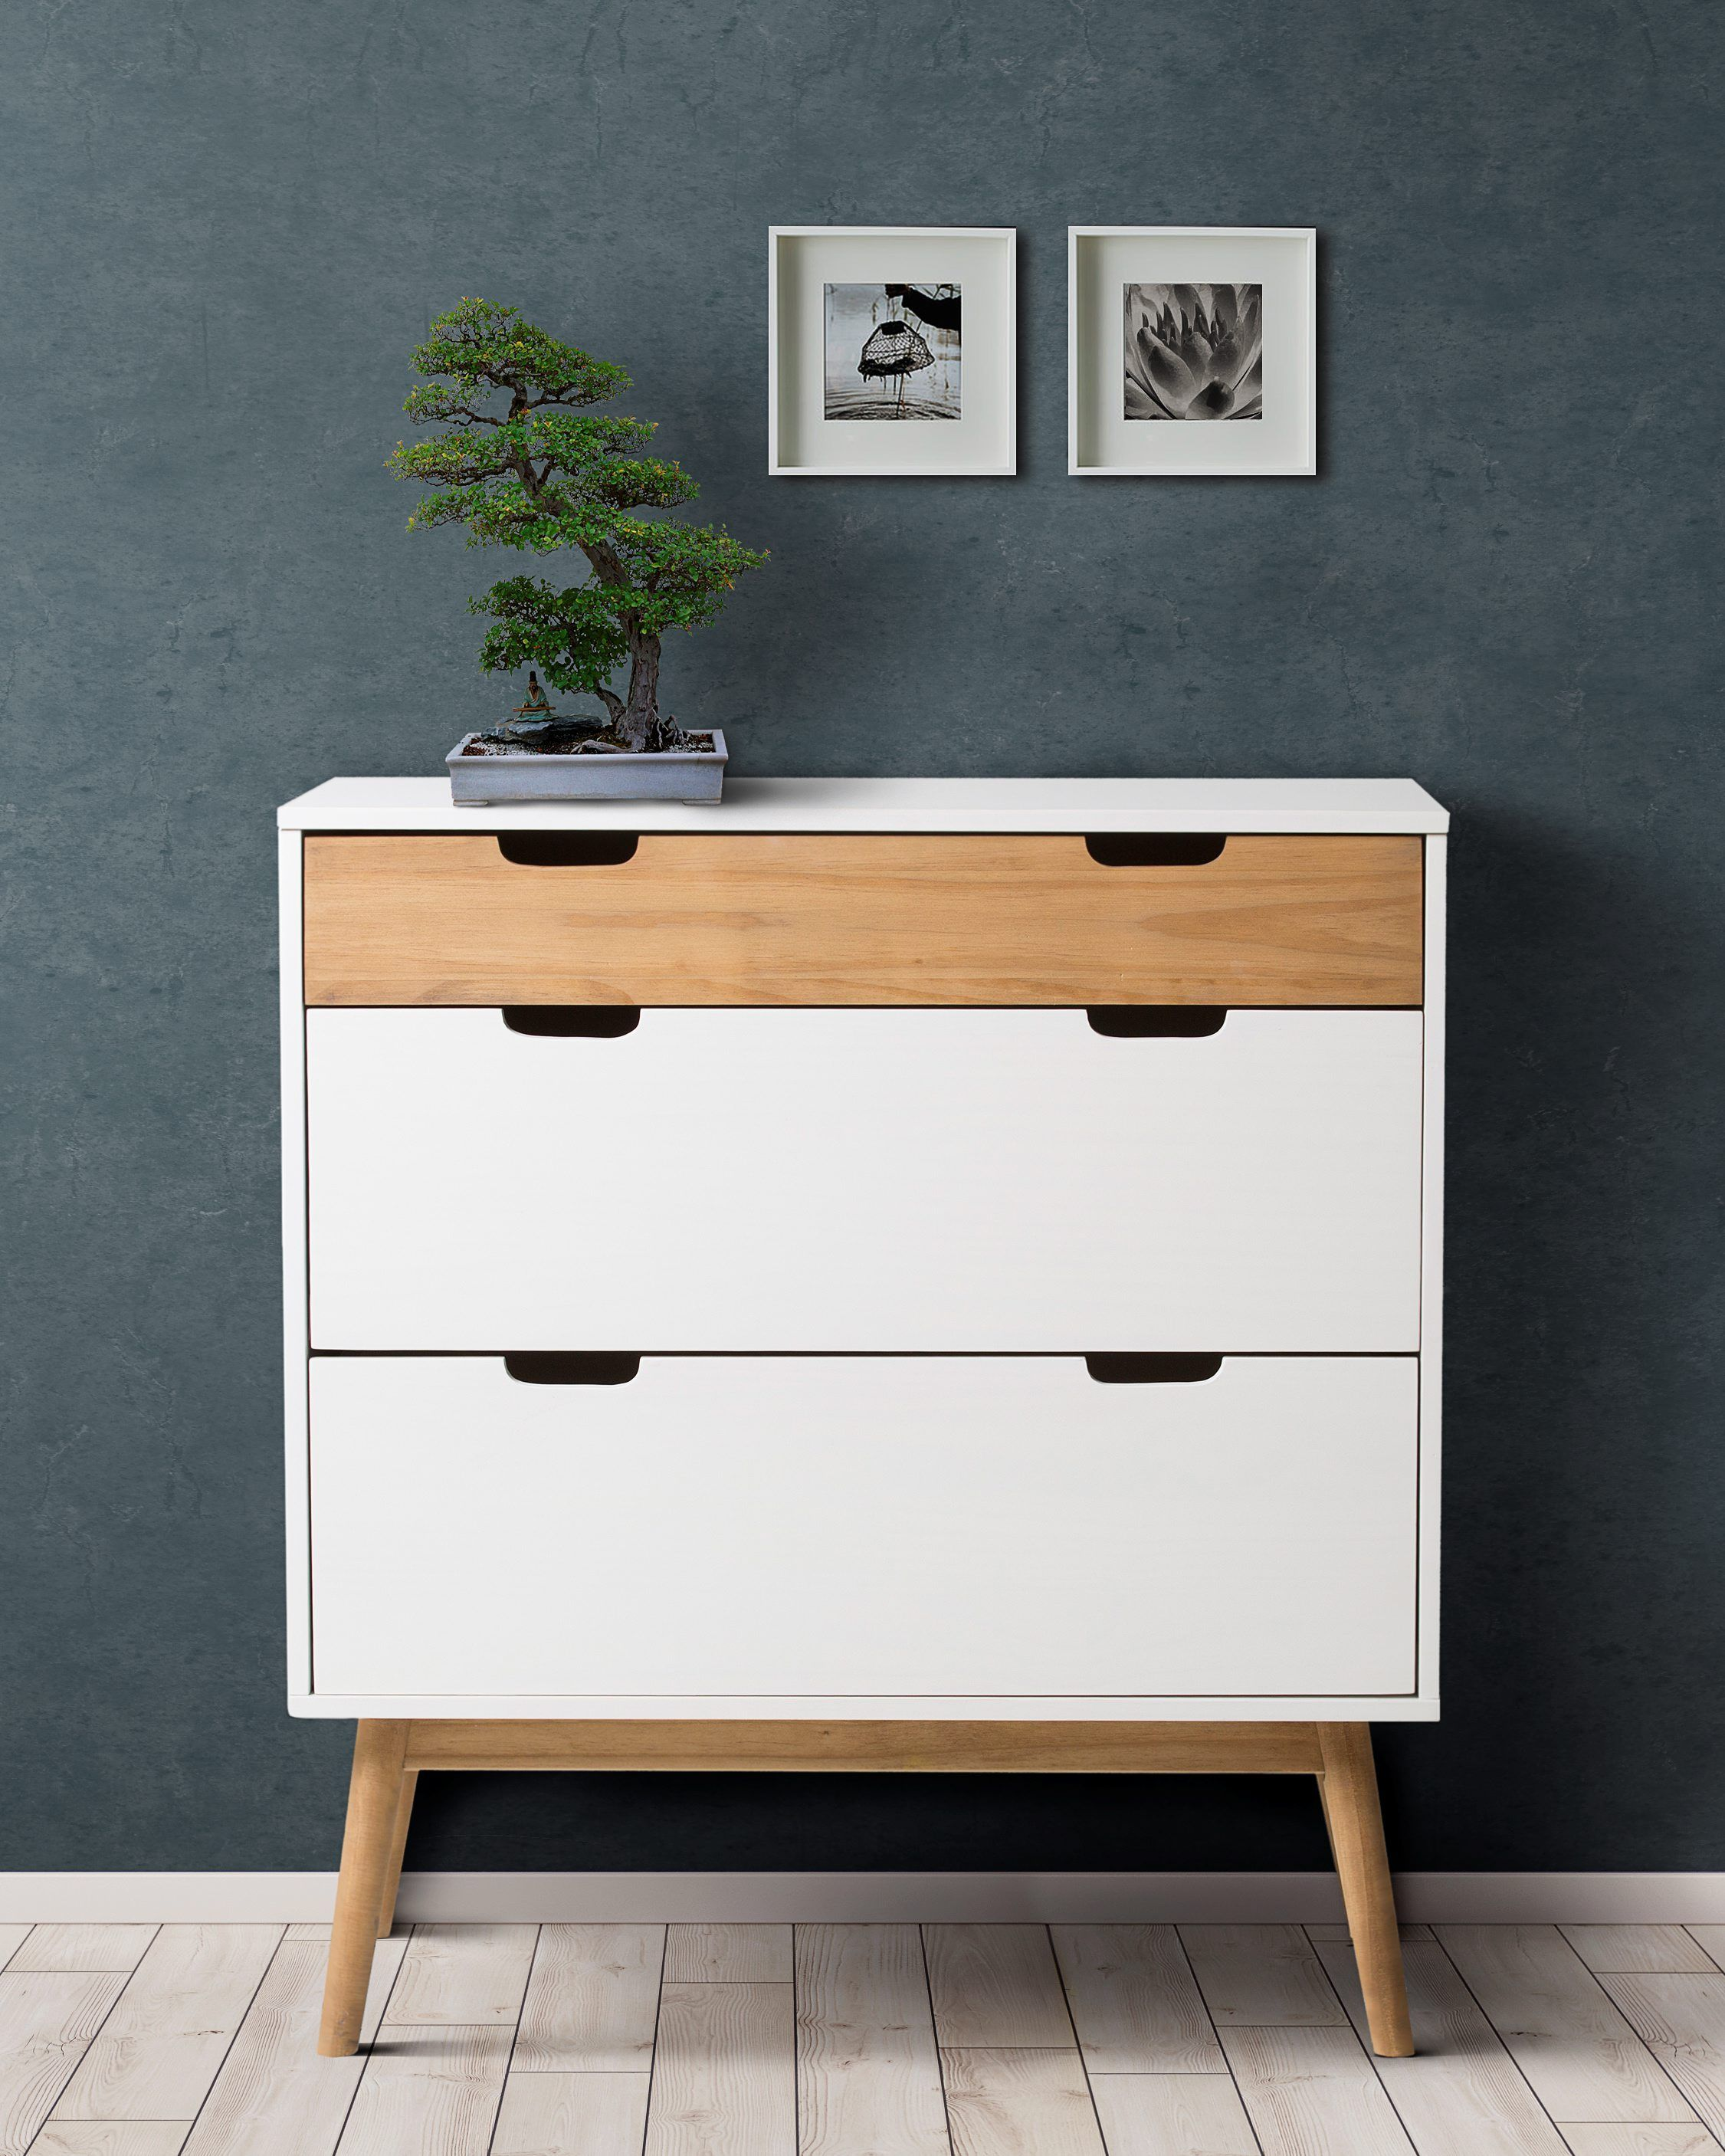 Meuble Scandinave Destockage Commode Scandinave 3 Tiroirs Maela Bois Massif Home Decor